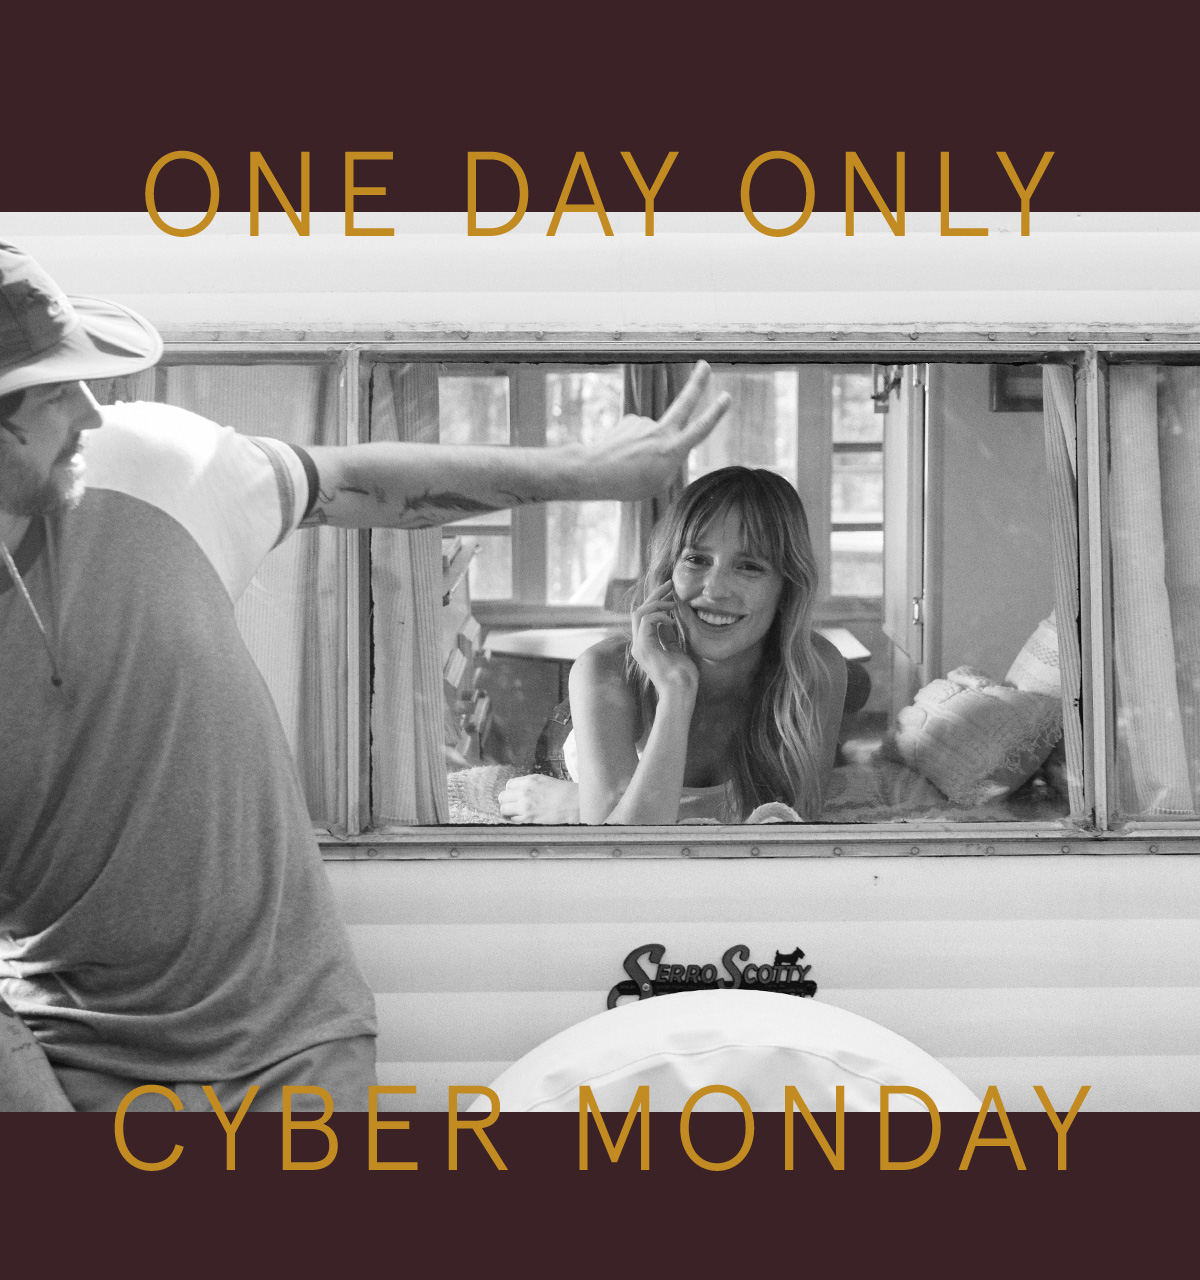 One Day Only CYBER Monday